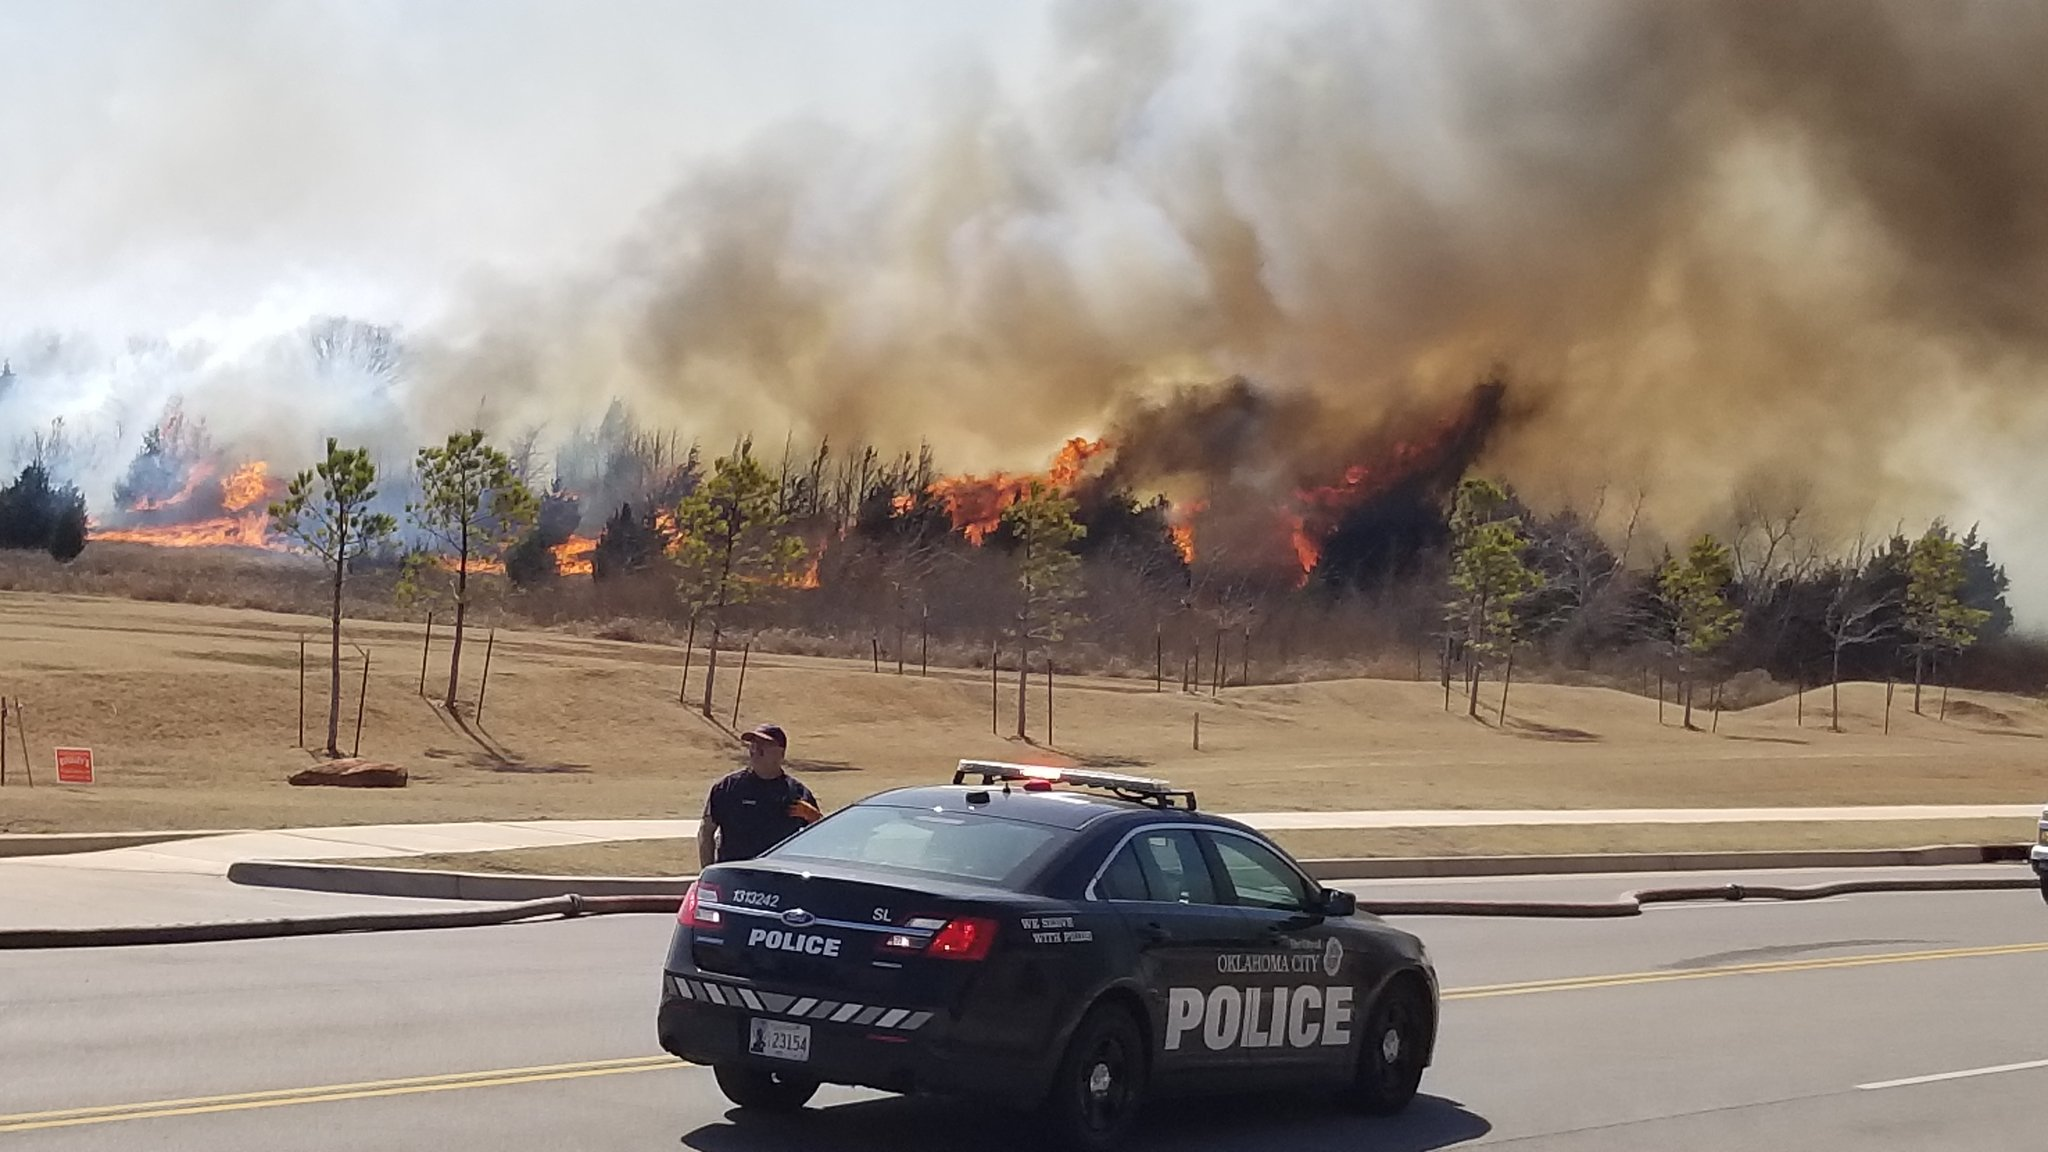 A grass fire burns March 15 near N. Kelley and Hefner in Oklahoma City. (KOKH/Steven Anderson)